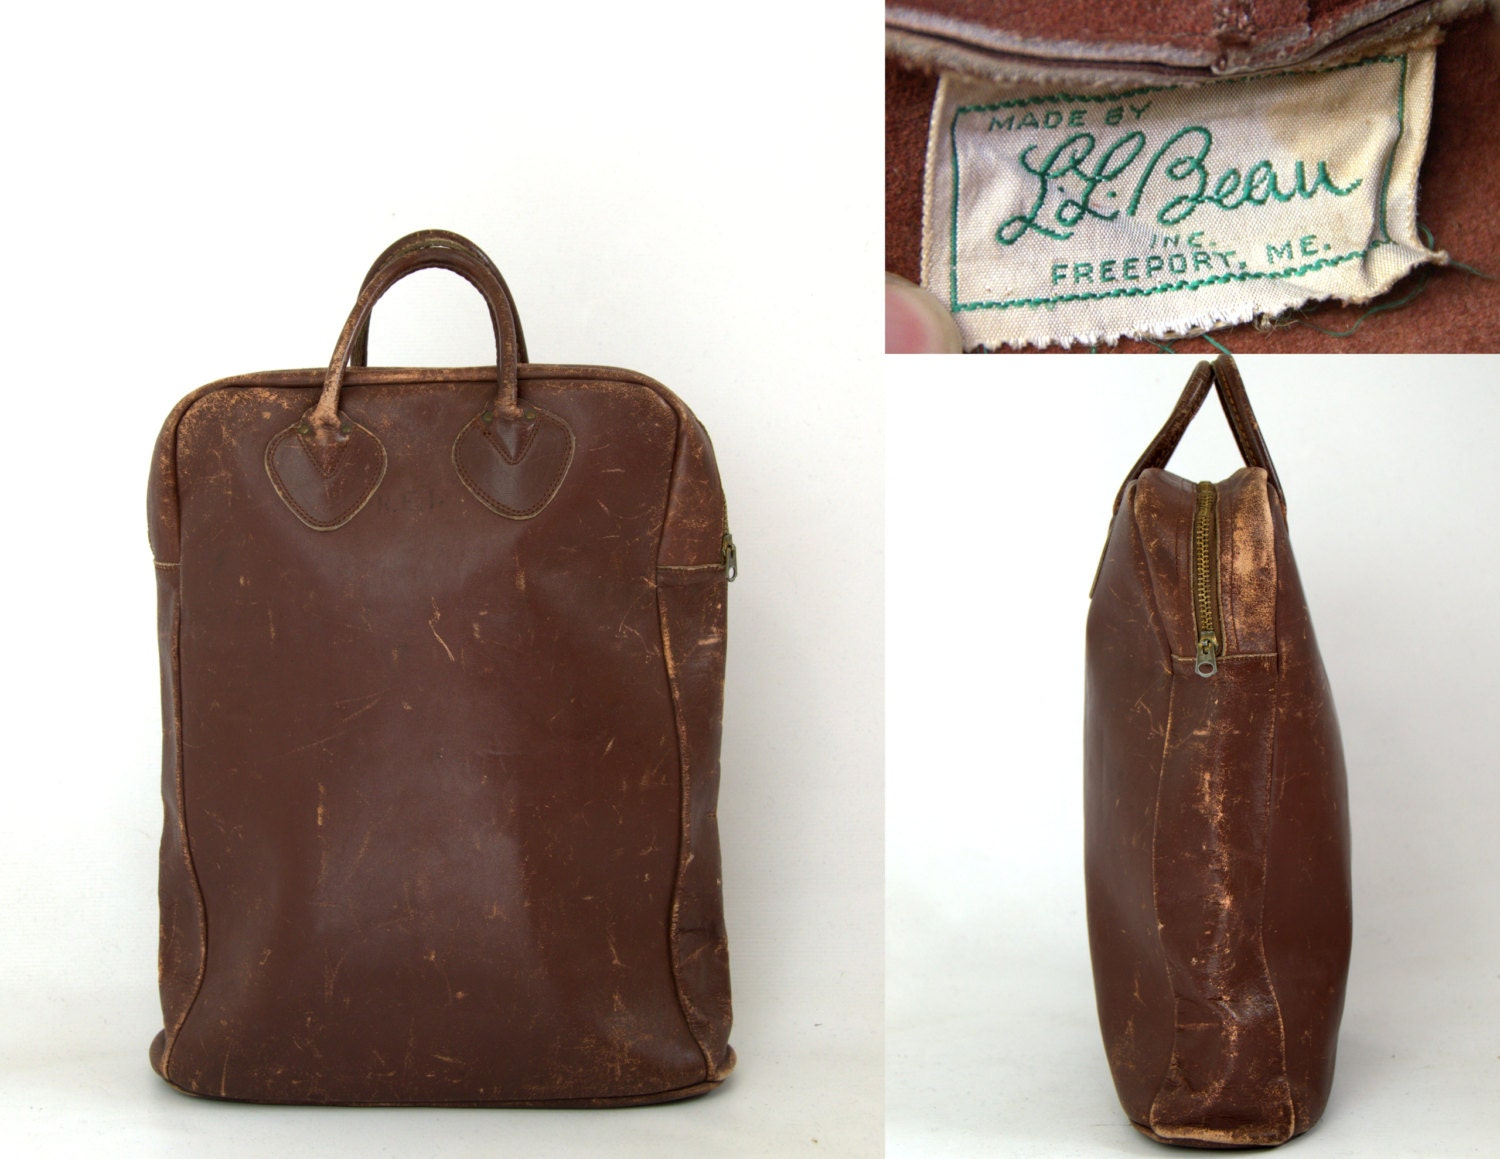 1940s LL Bean Leather Field Tote Shopper Bag